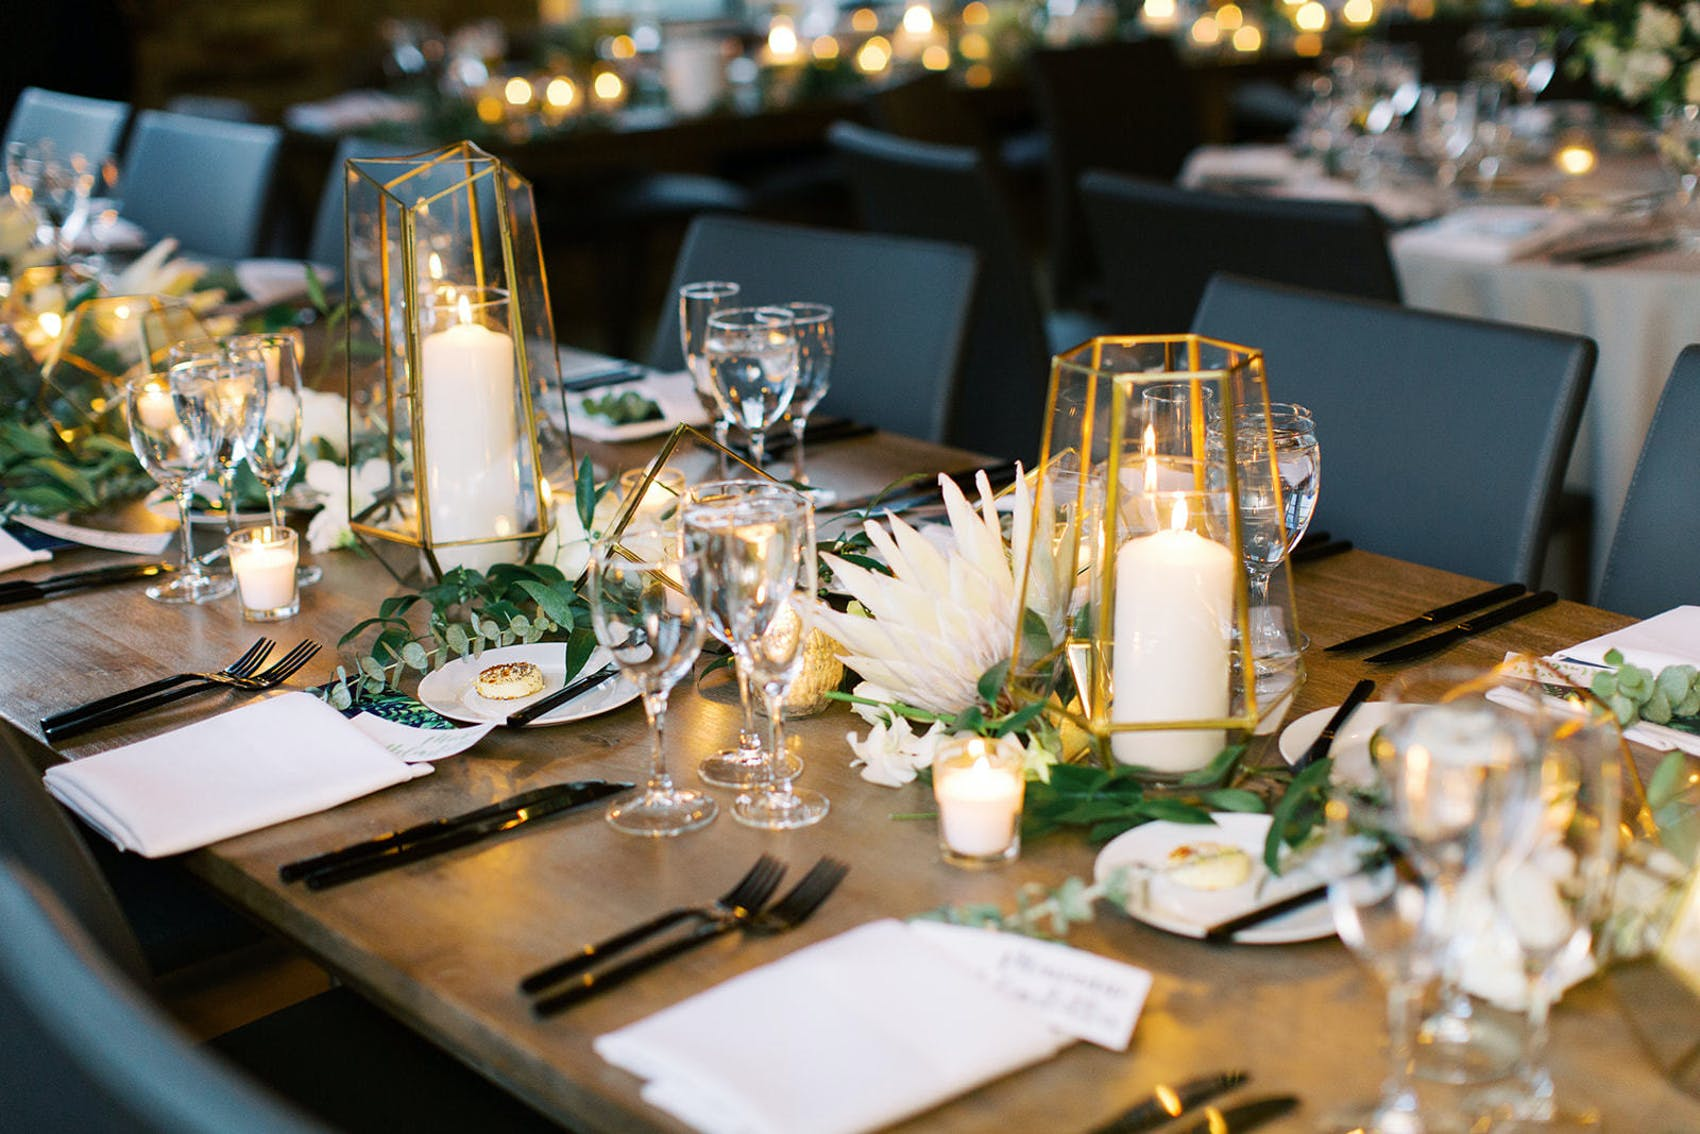 Two white candles and green and white flowers as centerpieces.